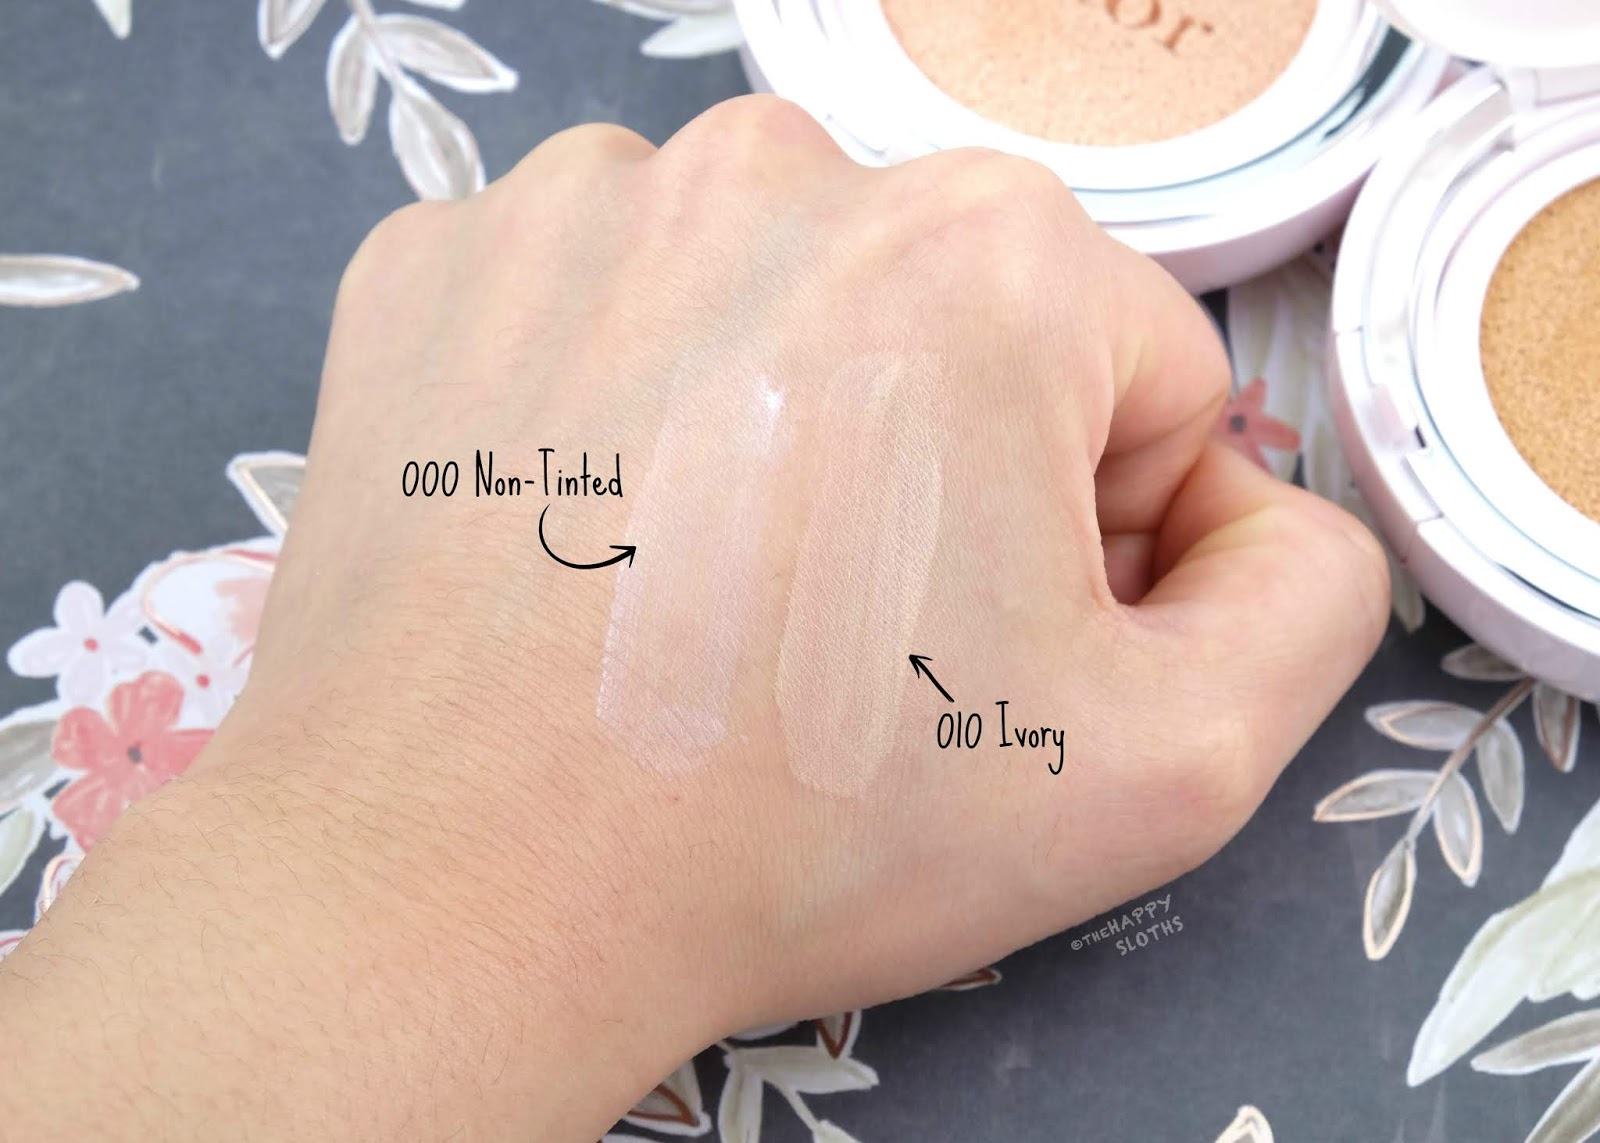 """Dior   Capture Dreamskin Fresh & Perfect Cushion in """"000 Non-Tinted"""" & """"010 Ivory"""": Review and Swatches"""